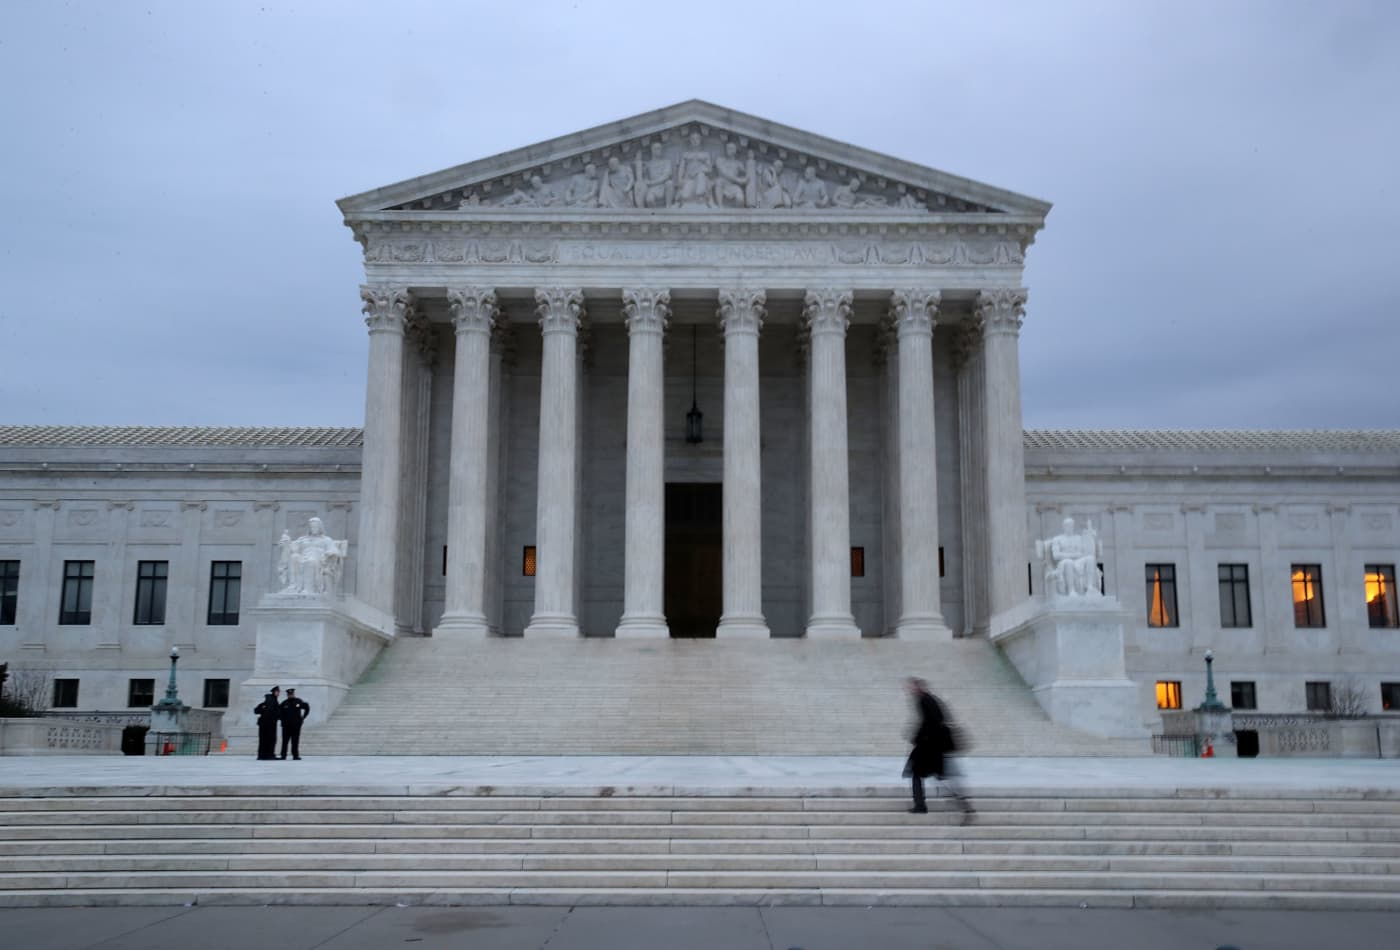 Supreme Court postpones arguments because of coronavirus, citing Spanish flu precedent